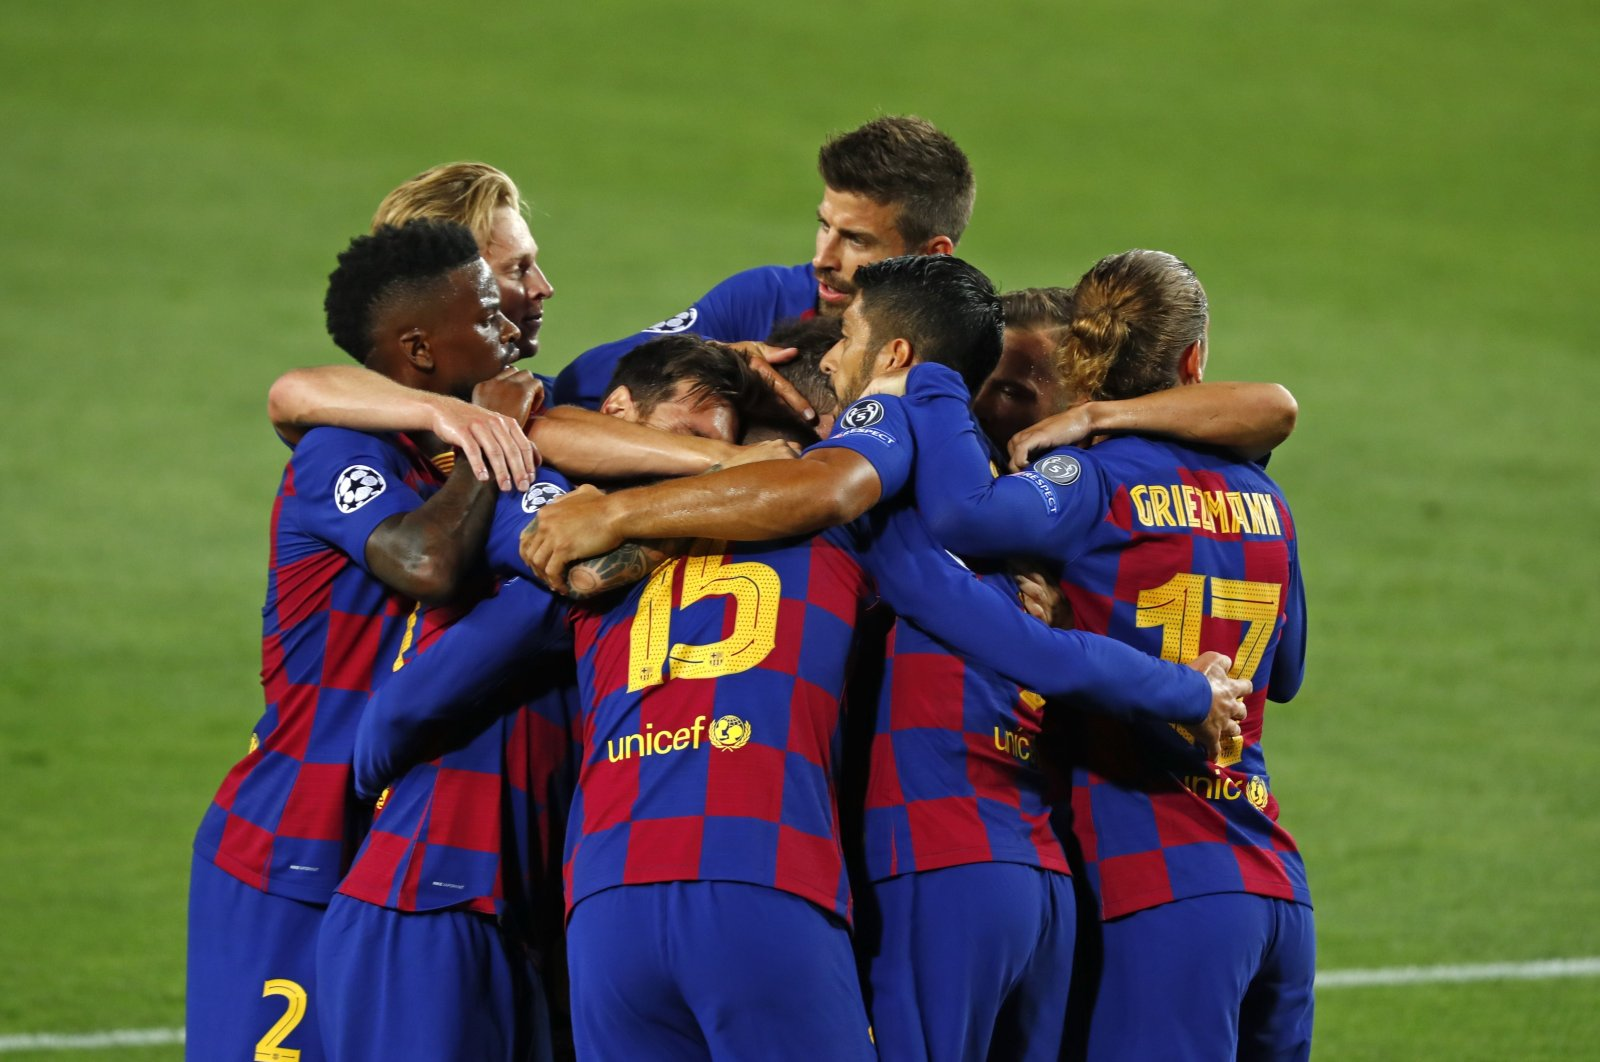 Barcelona players celebrate a goal during the Champions League match against Napoli in Barcelona, Spain, Aug. 8, 2020. (AP Photo)